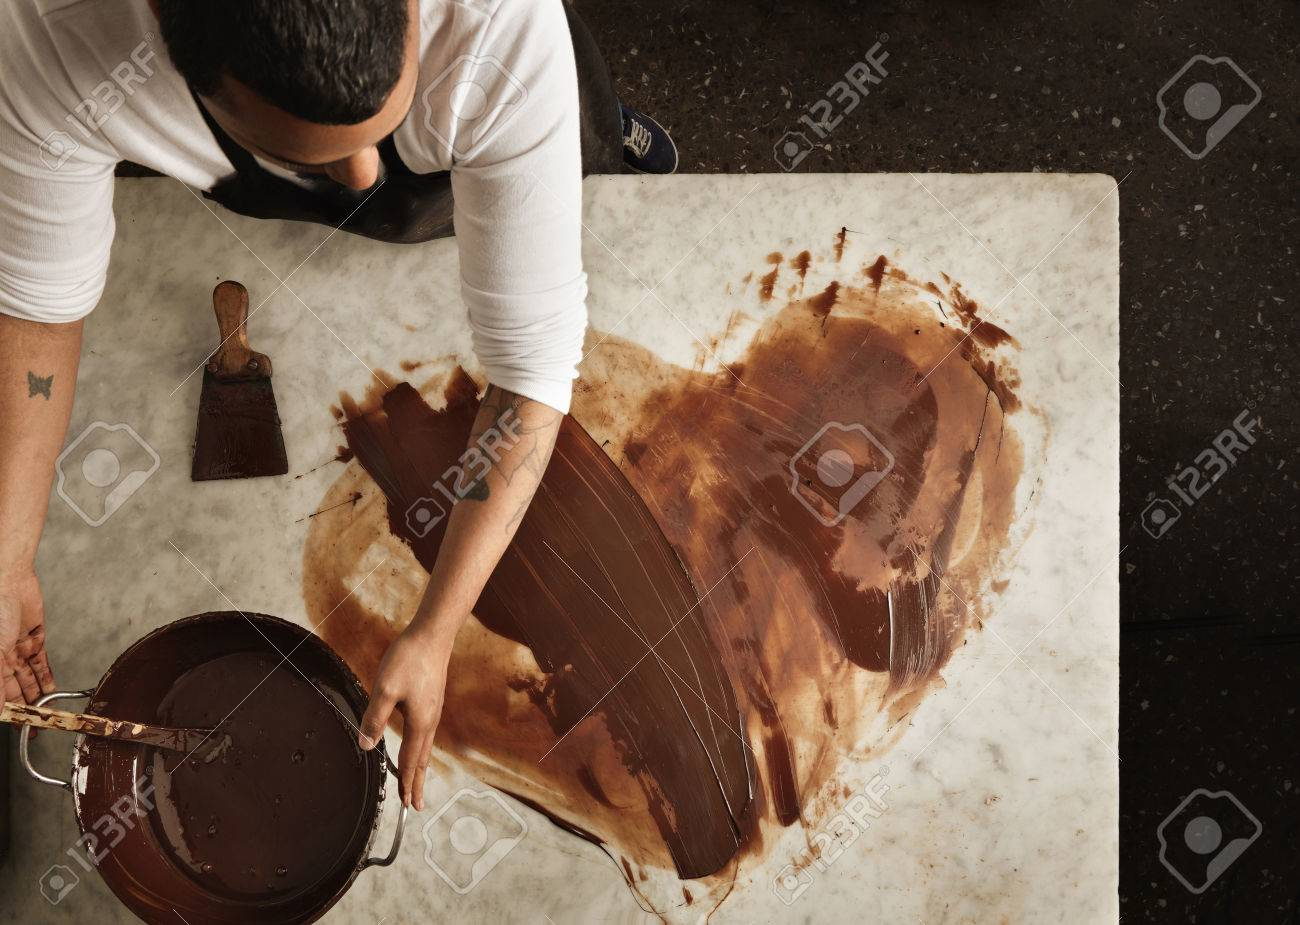 Top view professional black baker uses hot chocolate to draw a lovely heart, before makint sweet organic bars as romantic gifts for valentine day. Isolated on marble table in artisan retro laboratory - 56928754